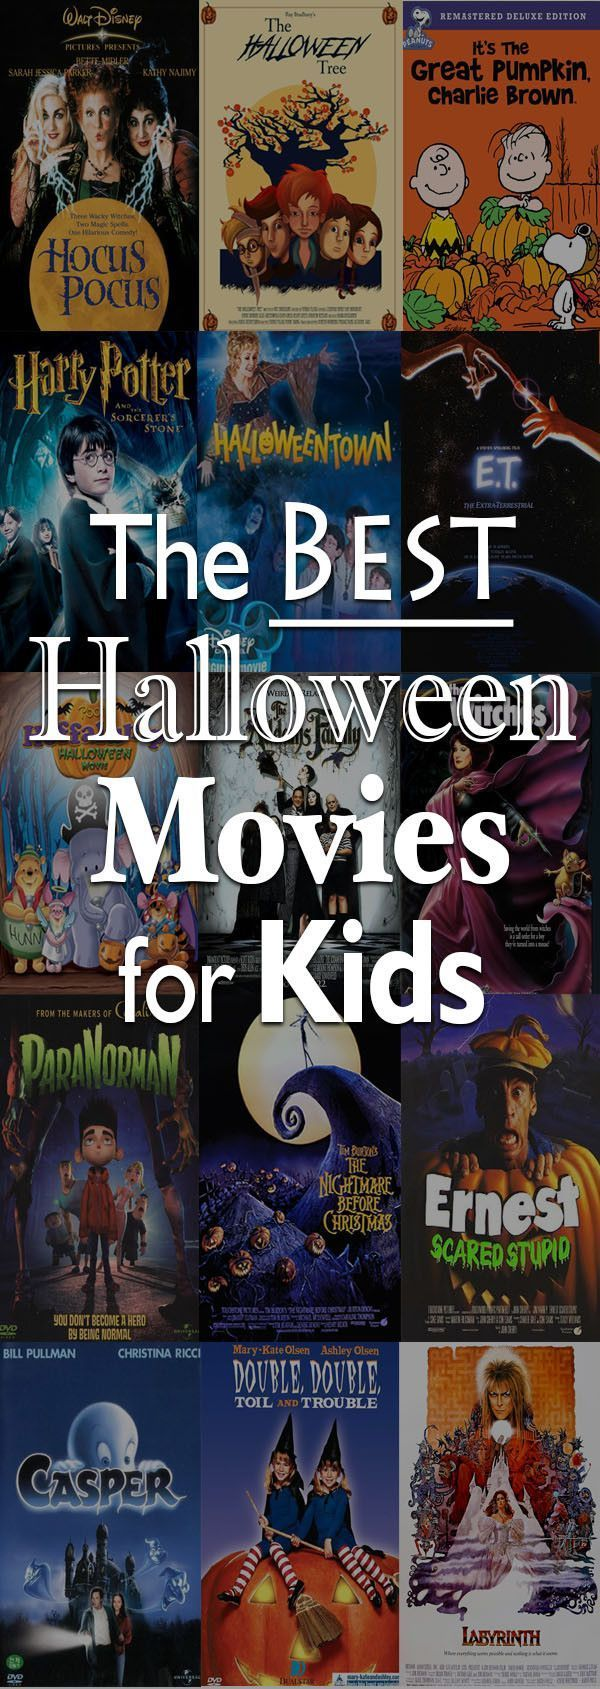 The Best Halloween Movies for Kids | Books to Devour | Pinterest ...